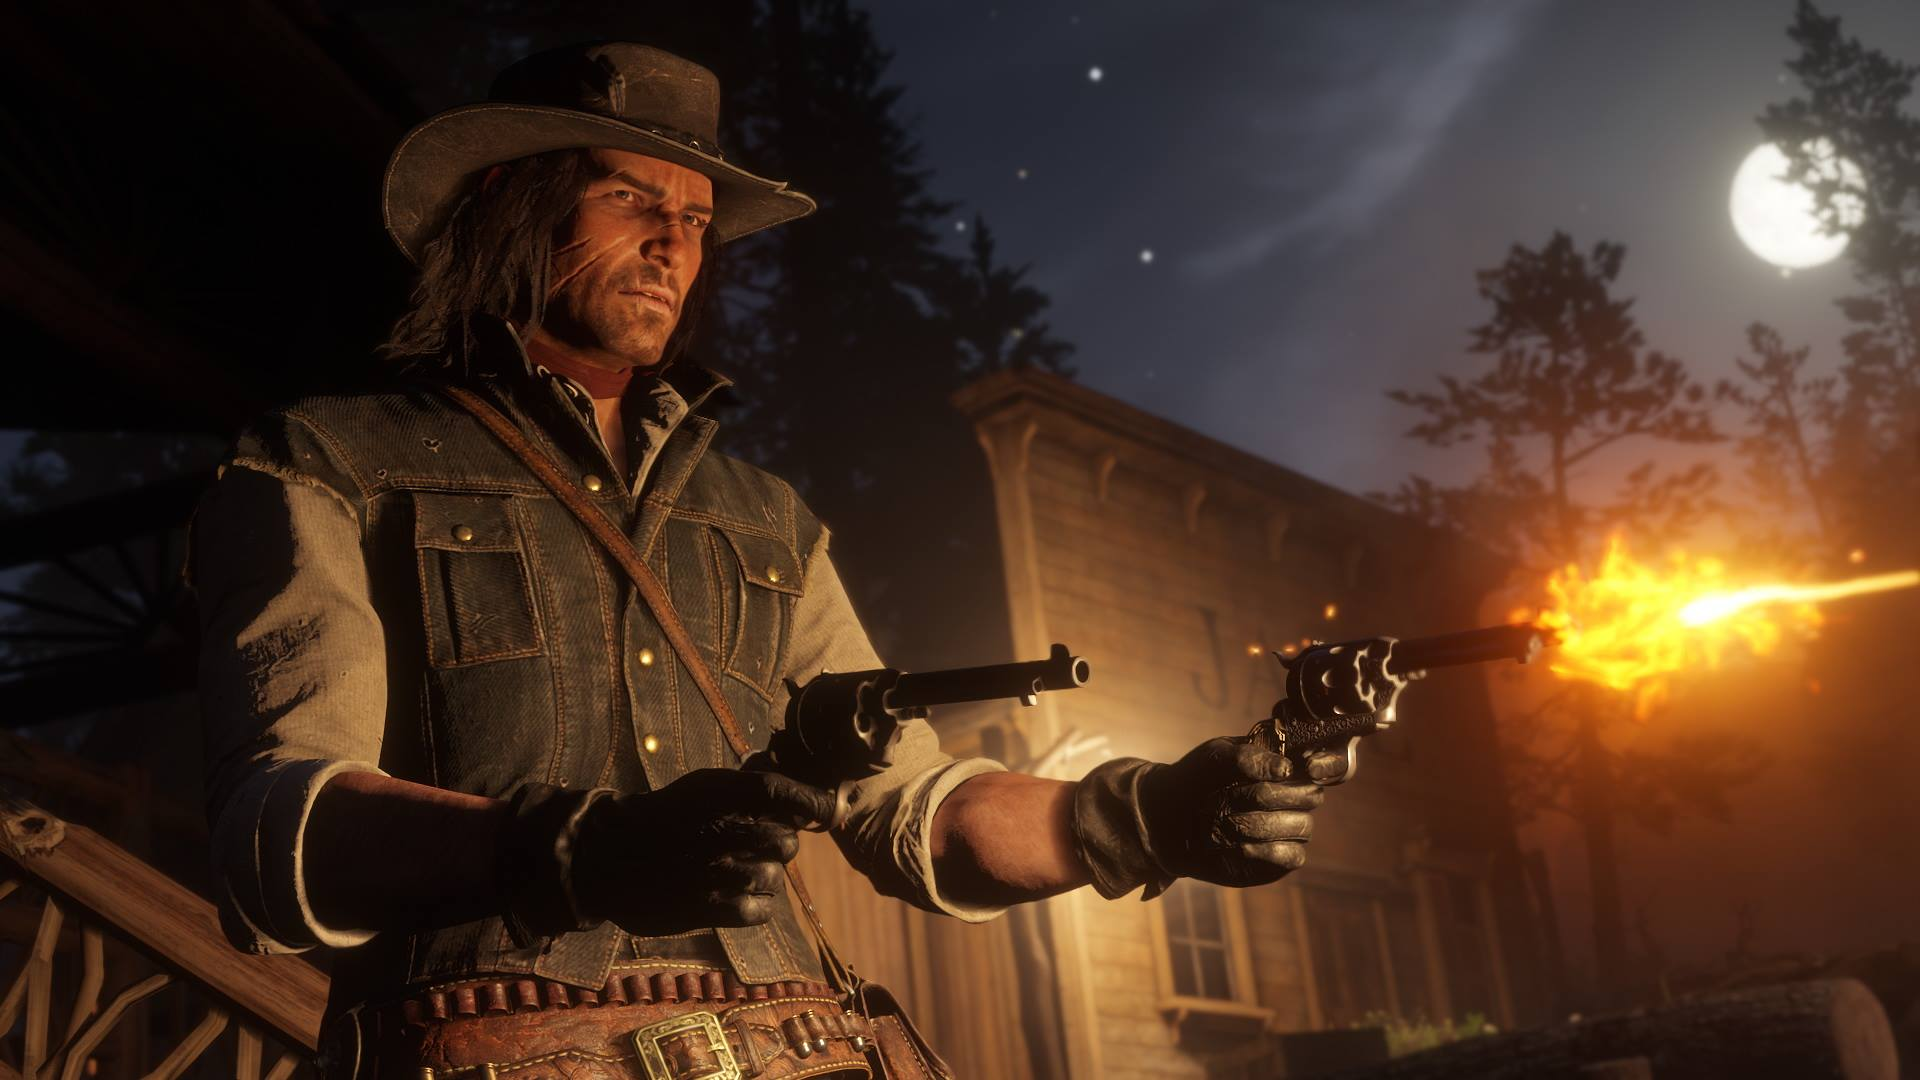 When is the Red Dead Redemption II multiplayer release date?